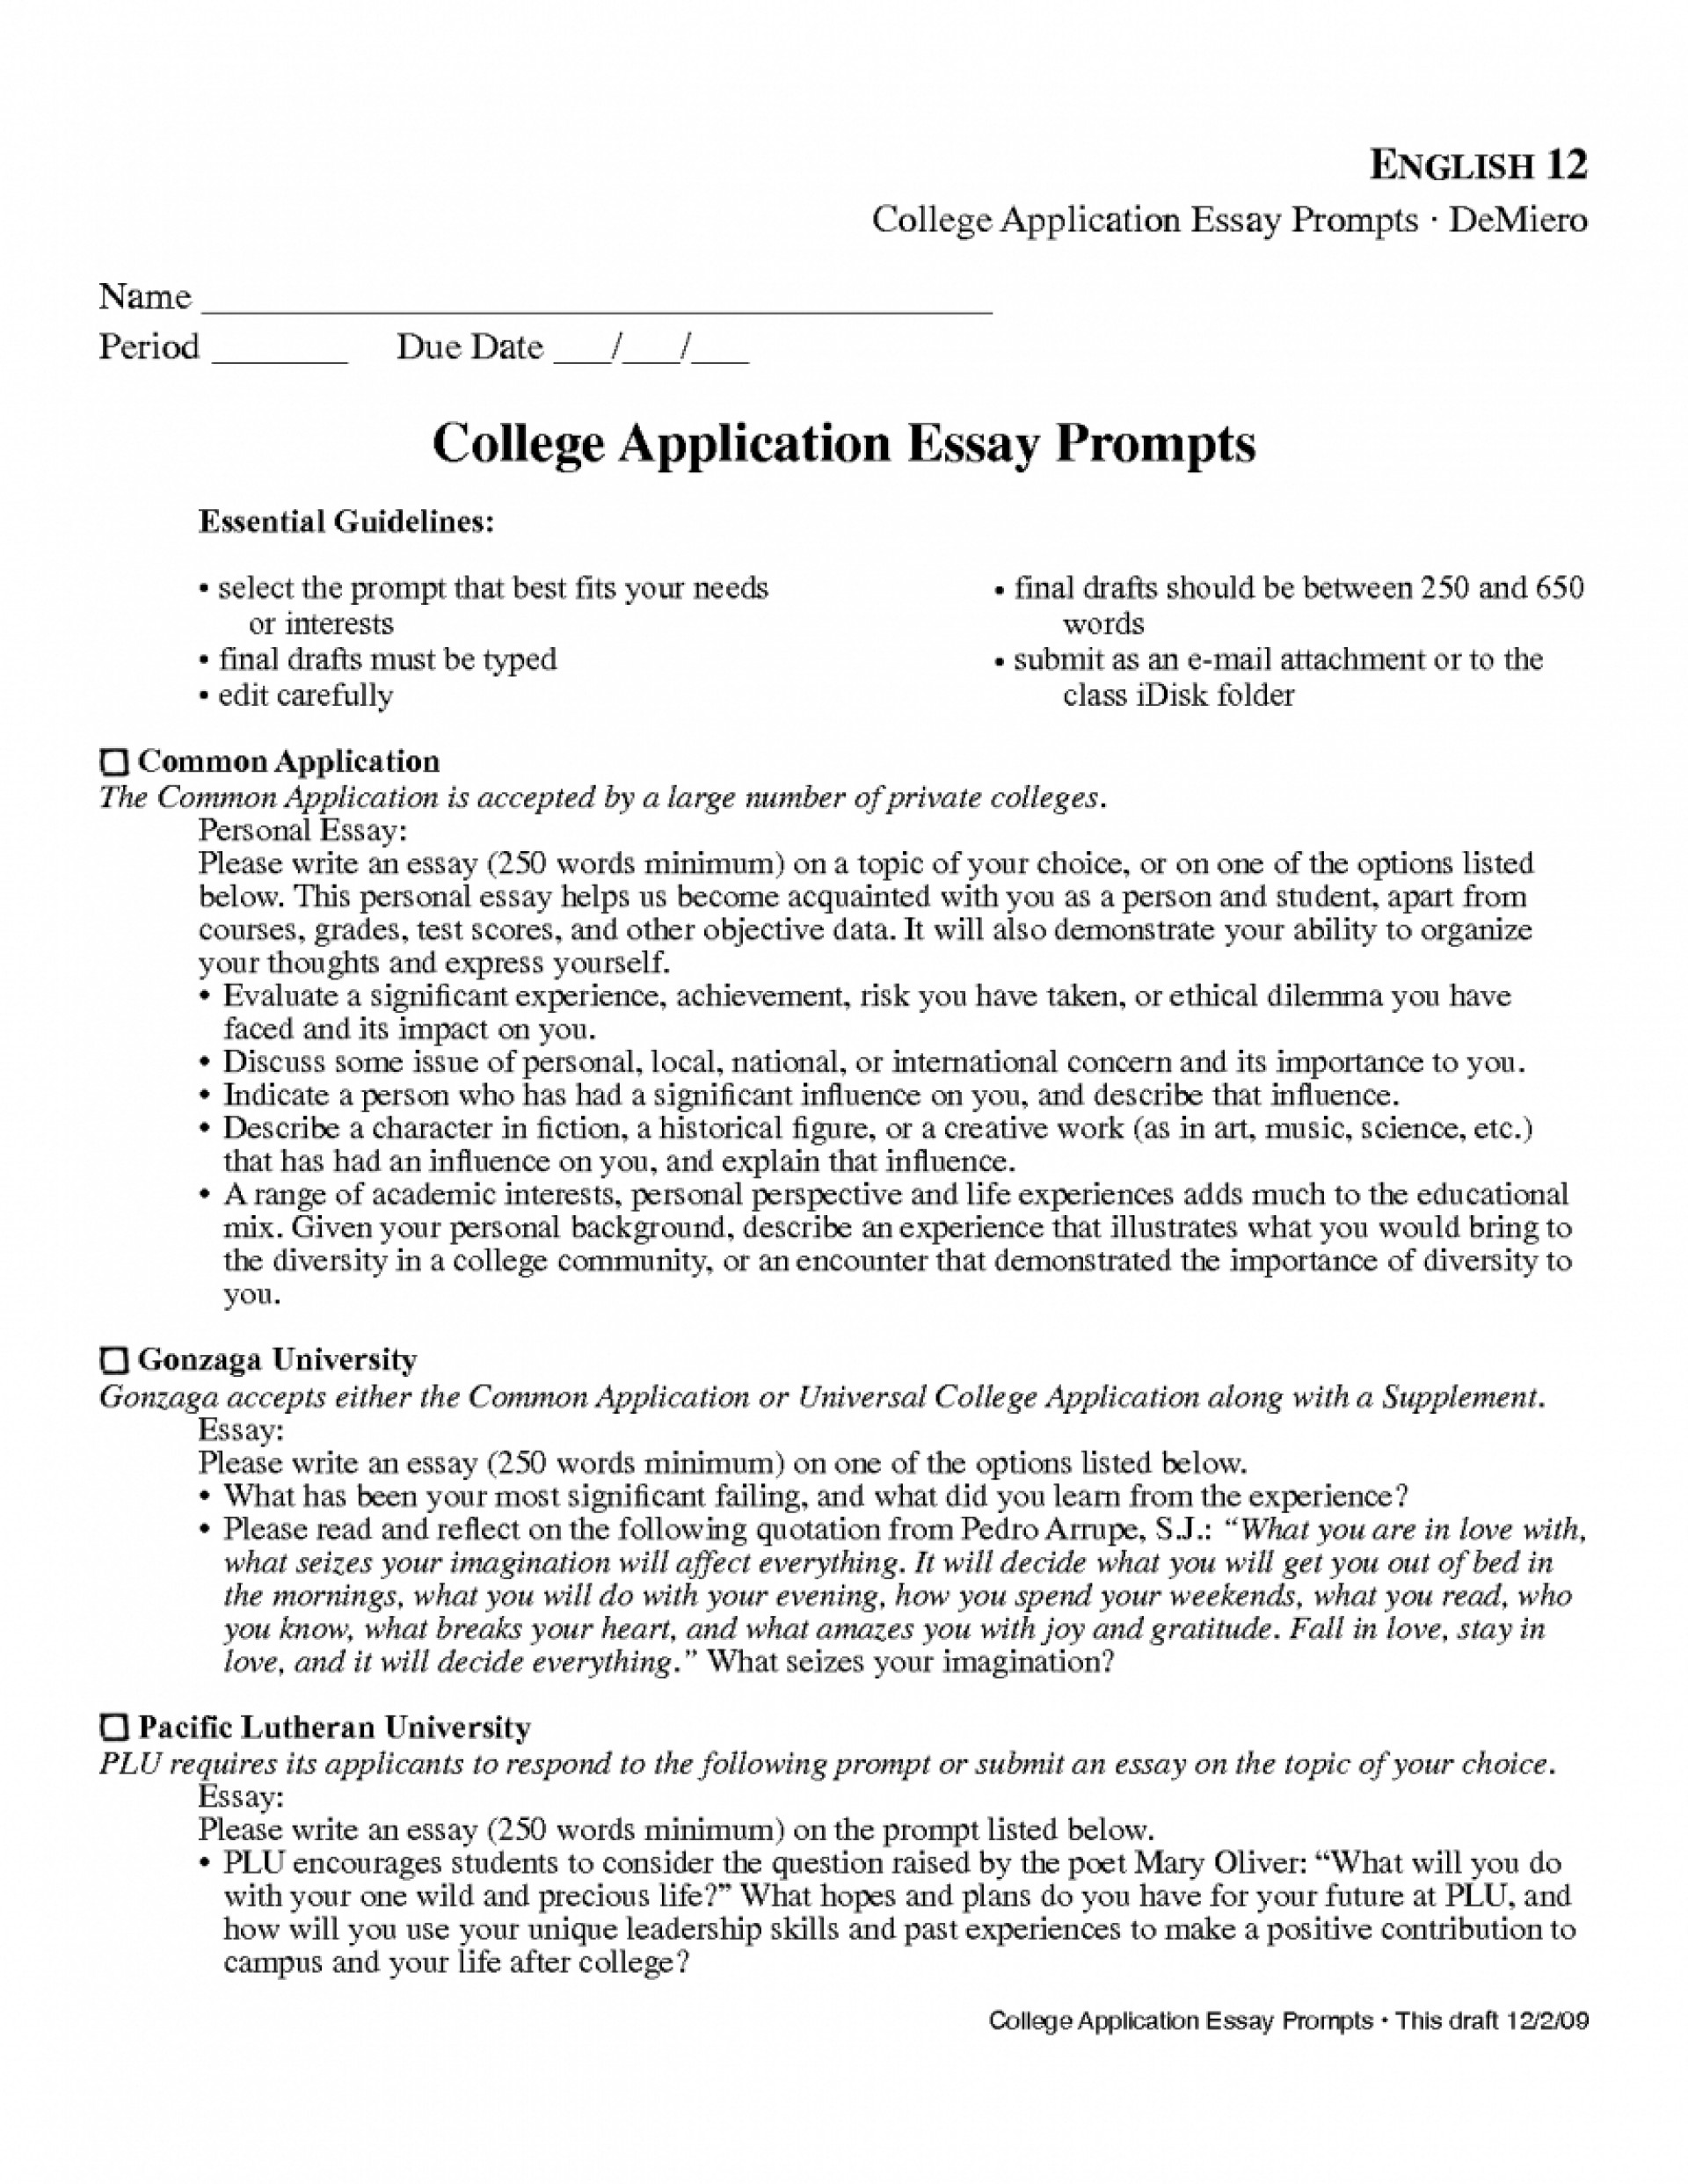 001 College Essay Prompt Prompts Writings And Essayss Of Application Questions Guve Securid Co With Rega Sample Stirring Examples Apply Texas 2018 5 1920